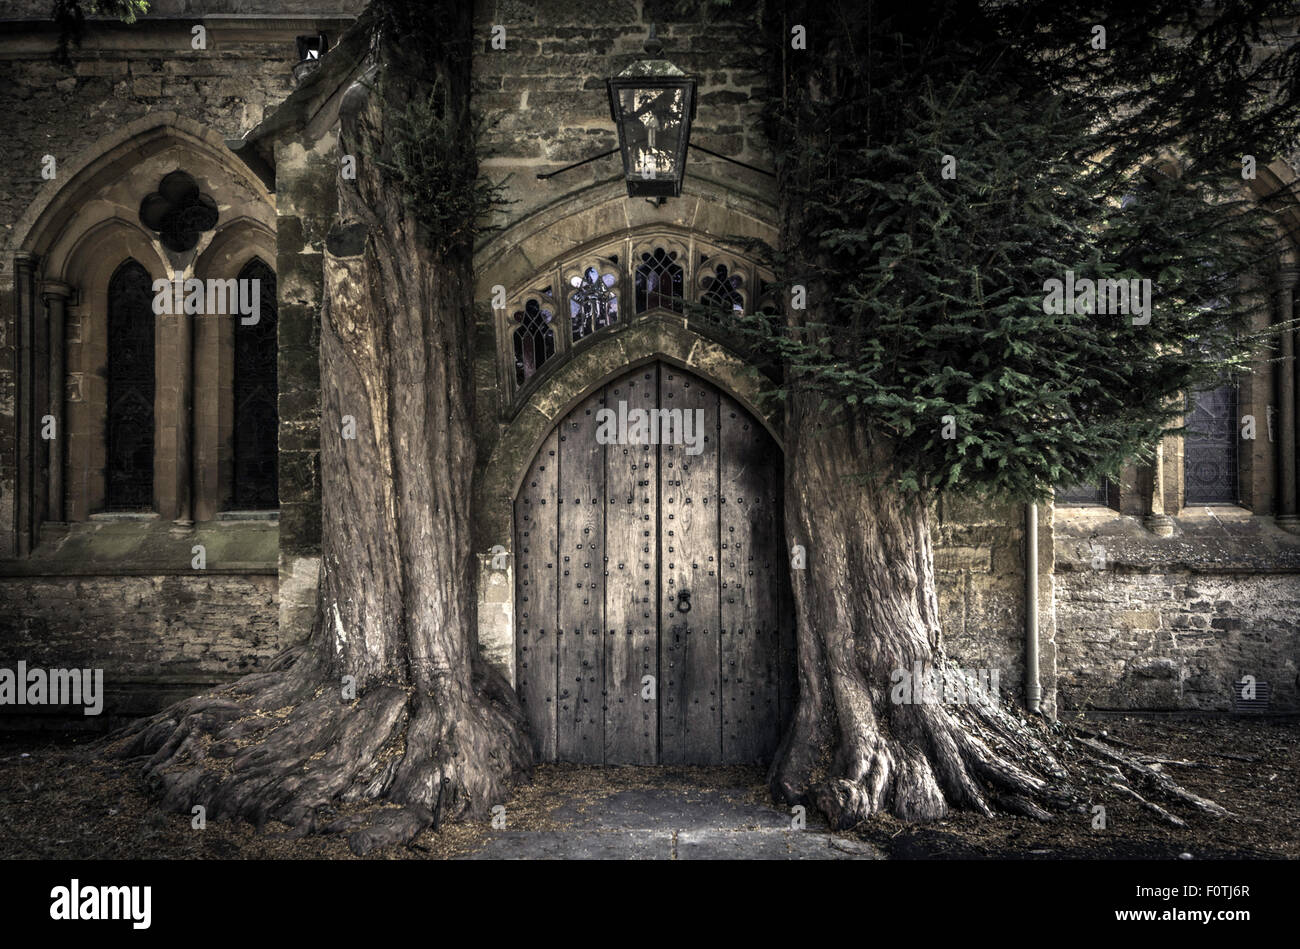 The north door of St Edwards church with two ancient yew trees either side, Stow on the Wold, Gloucestershire, England, - Stock Image